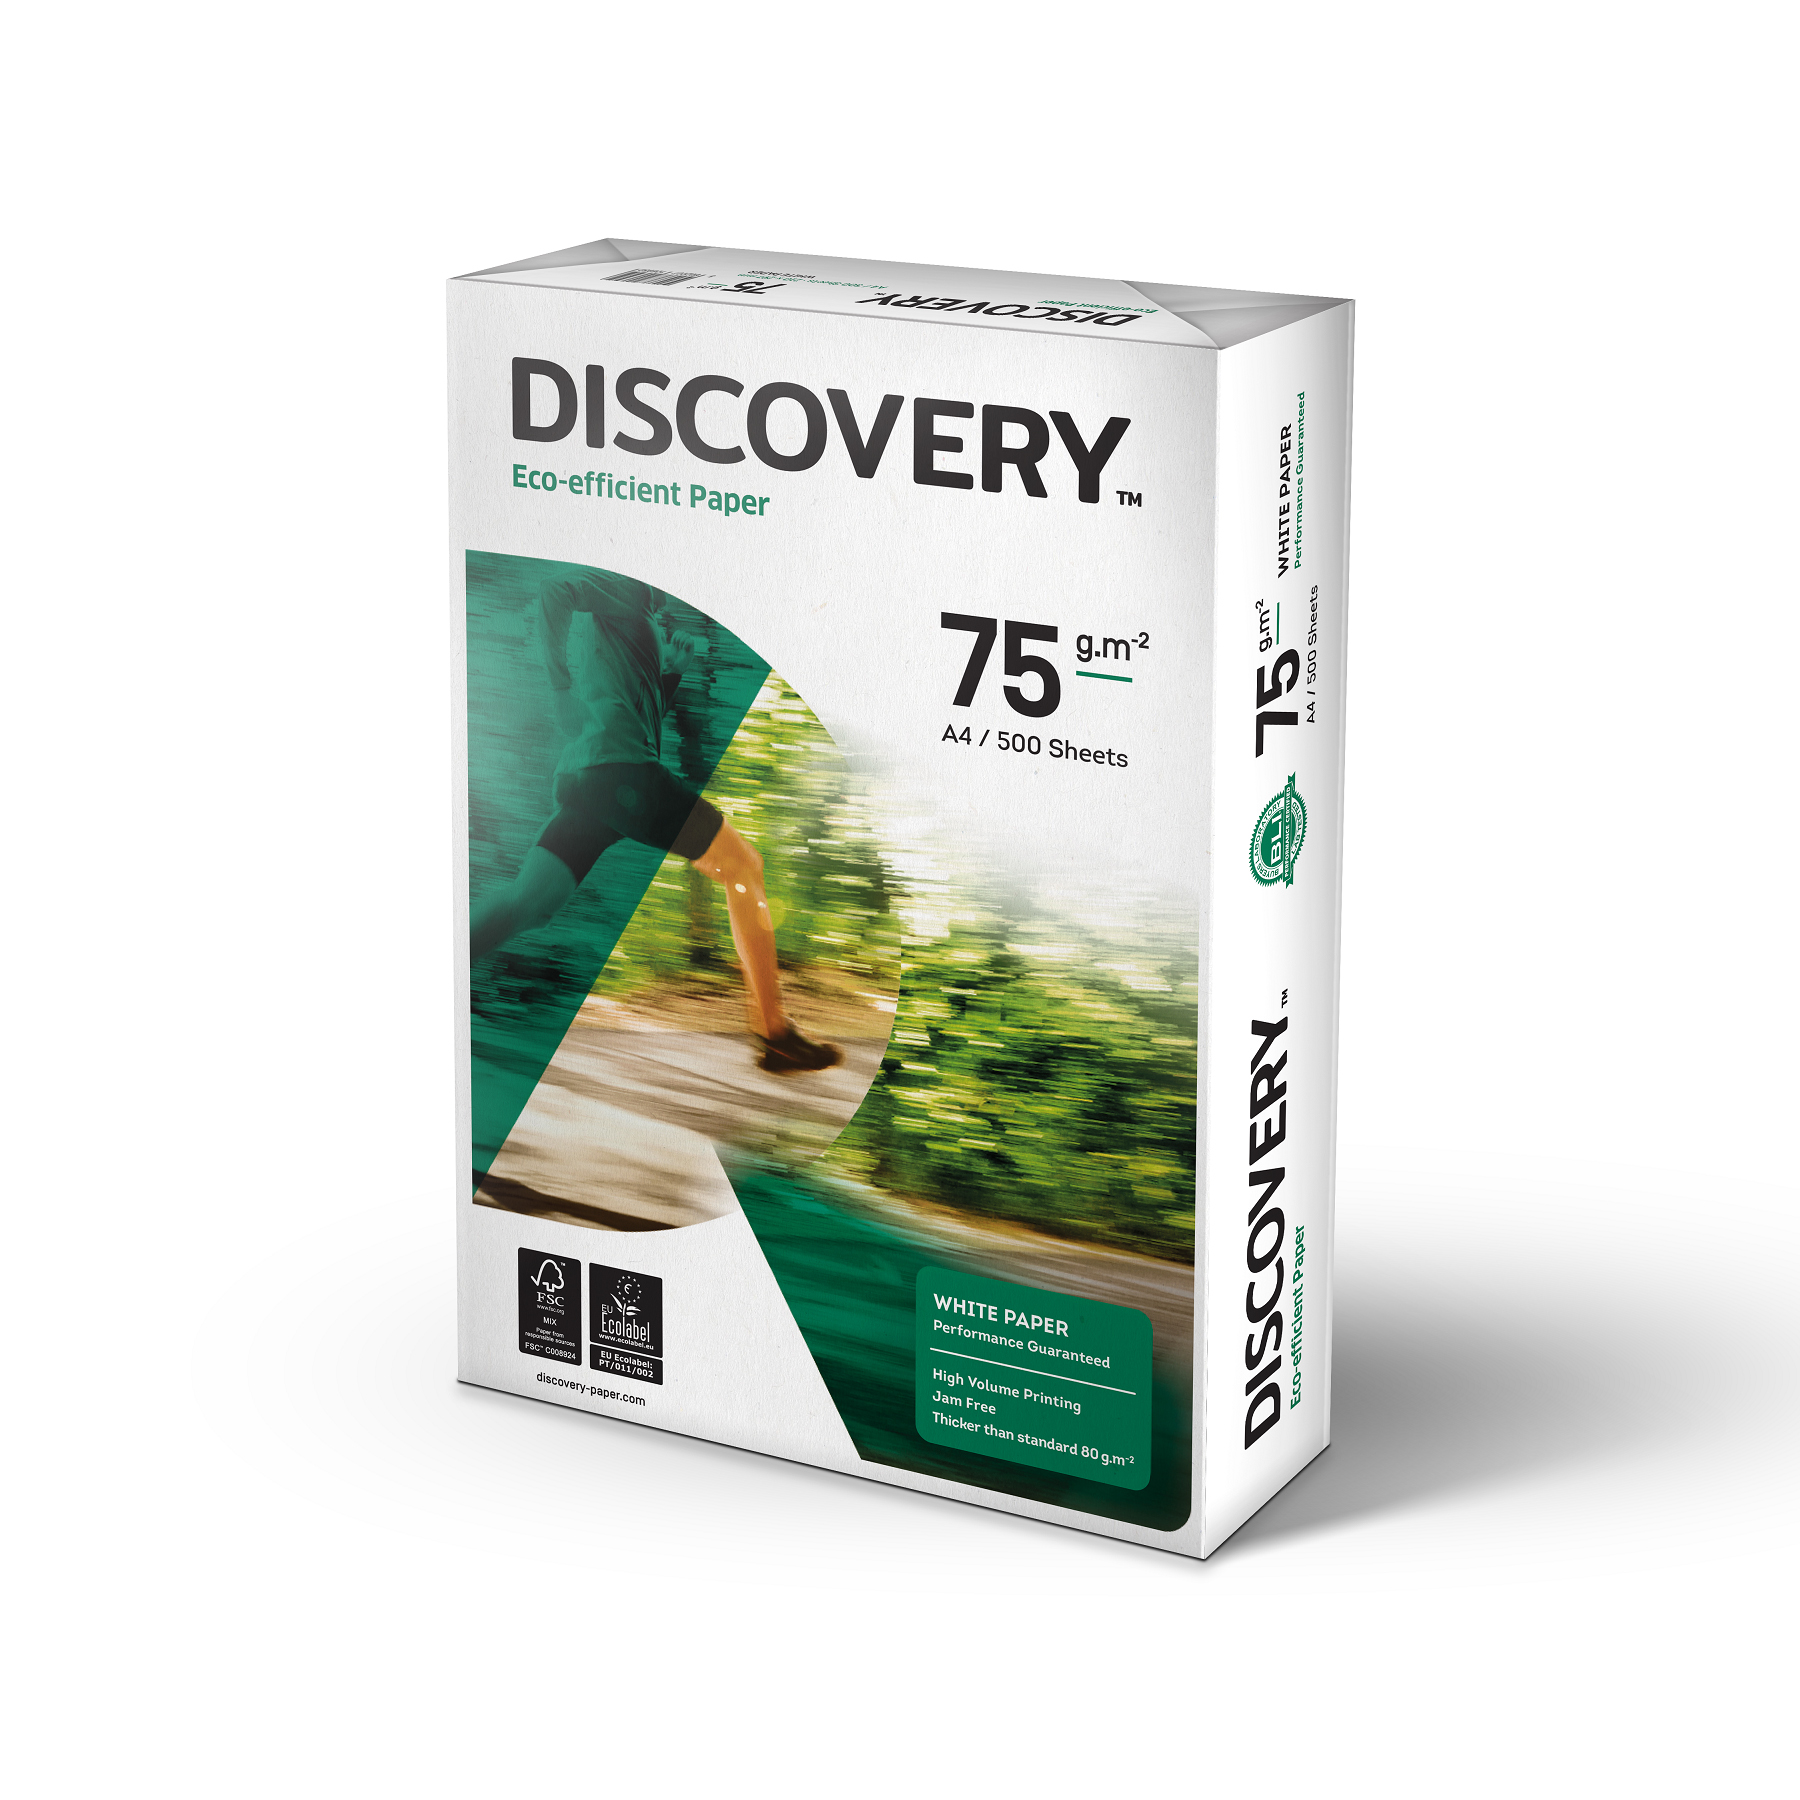 Discovery Everyday Paper FSC 5x Ream-wrapped Pks 75gsm A4 White Ref DIS0750073 5x500 Sheets